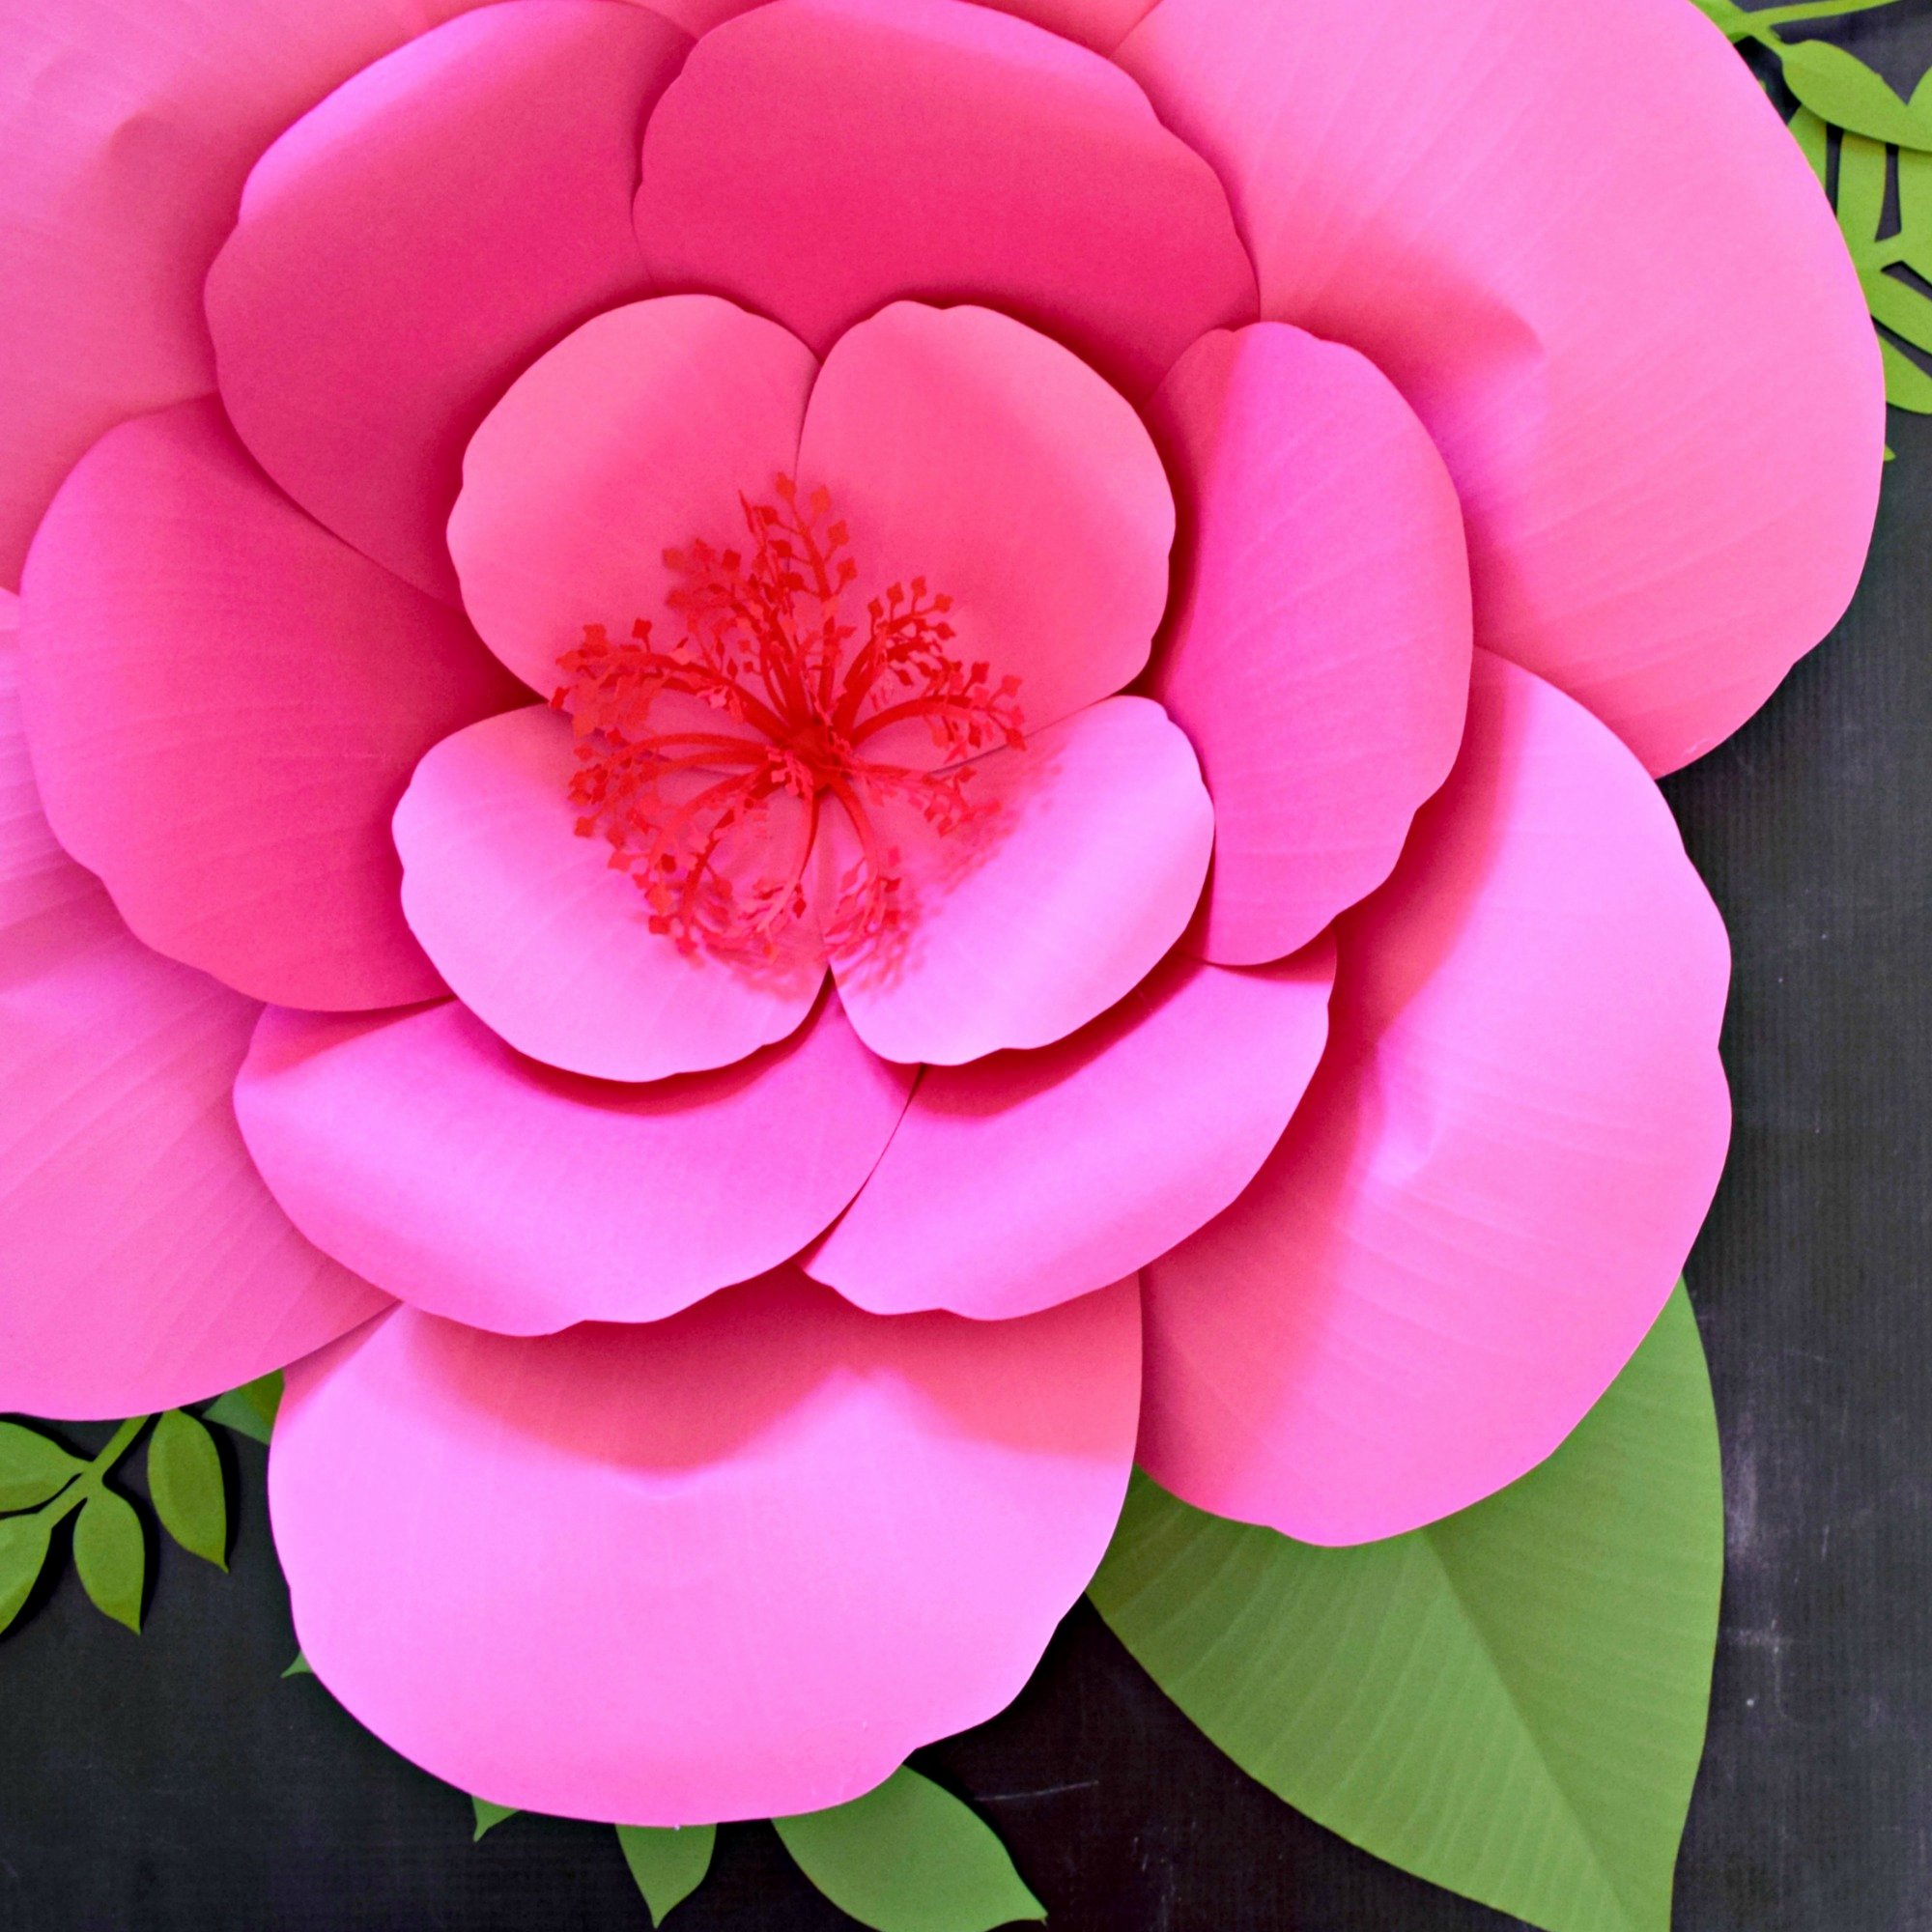 Paper Flower Templates to Print Beautiful Paper Flower Templates with Full Tutorials Printable Pdf